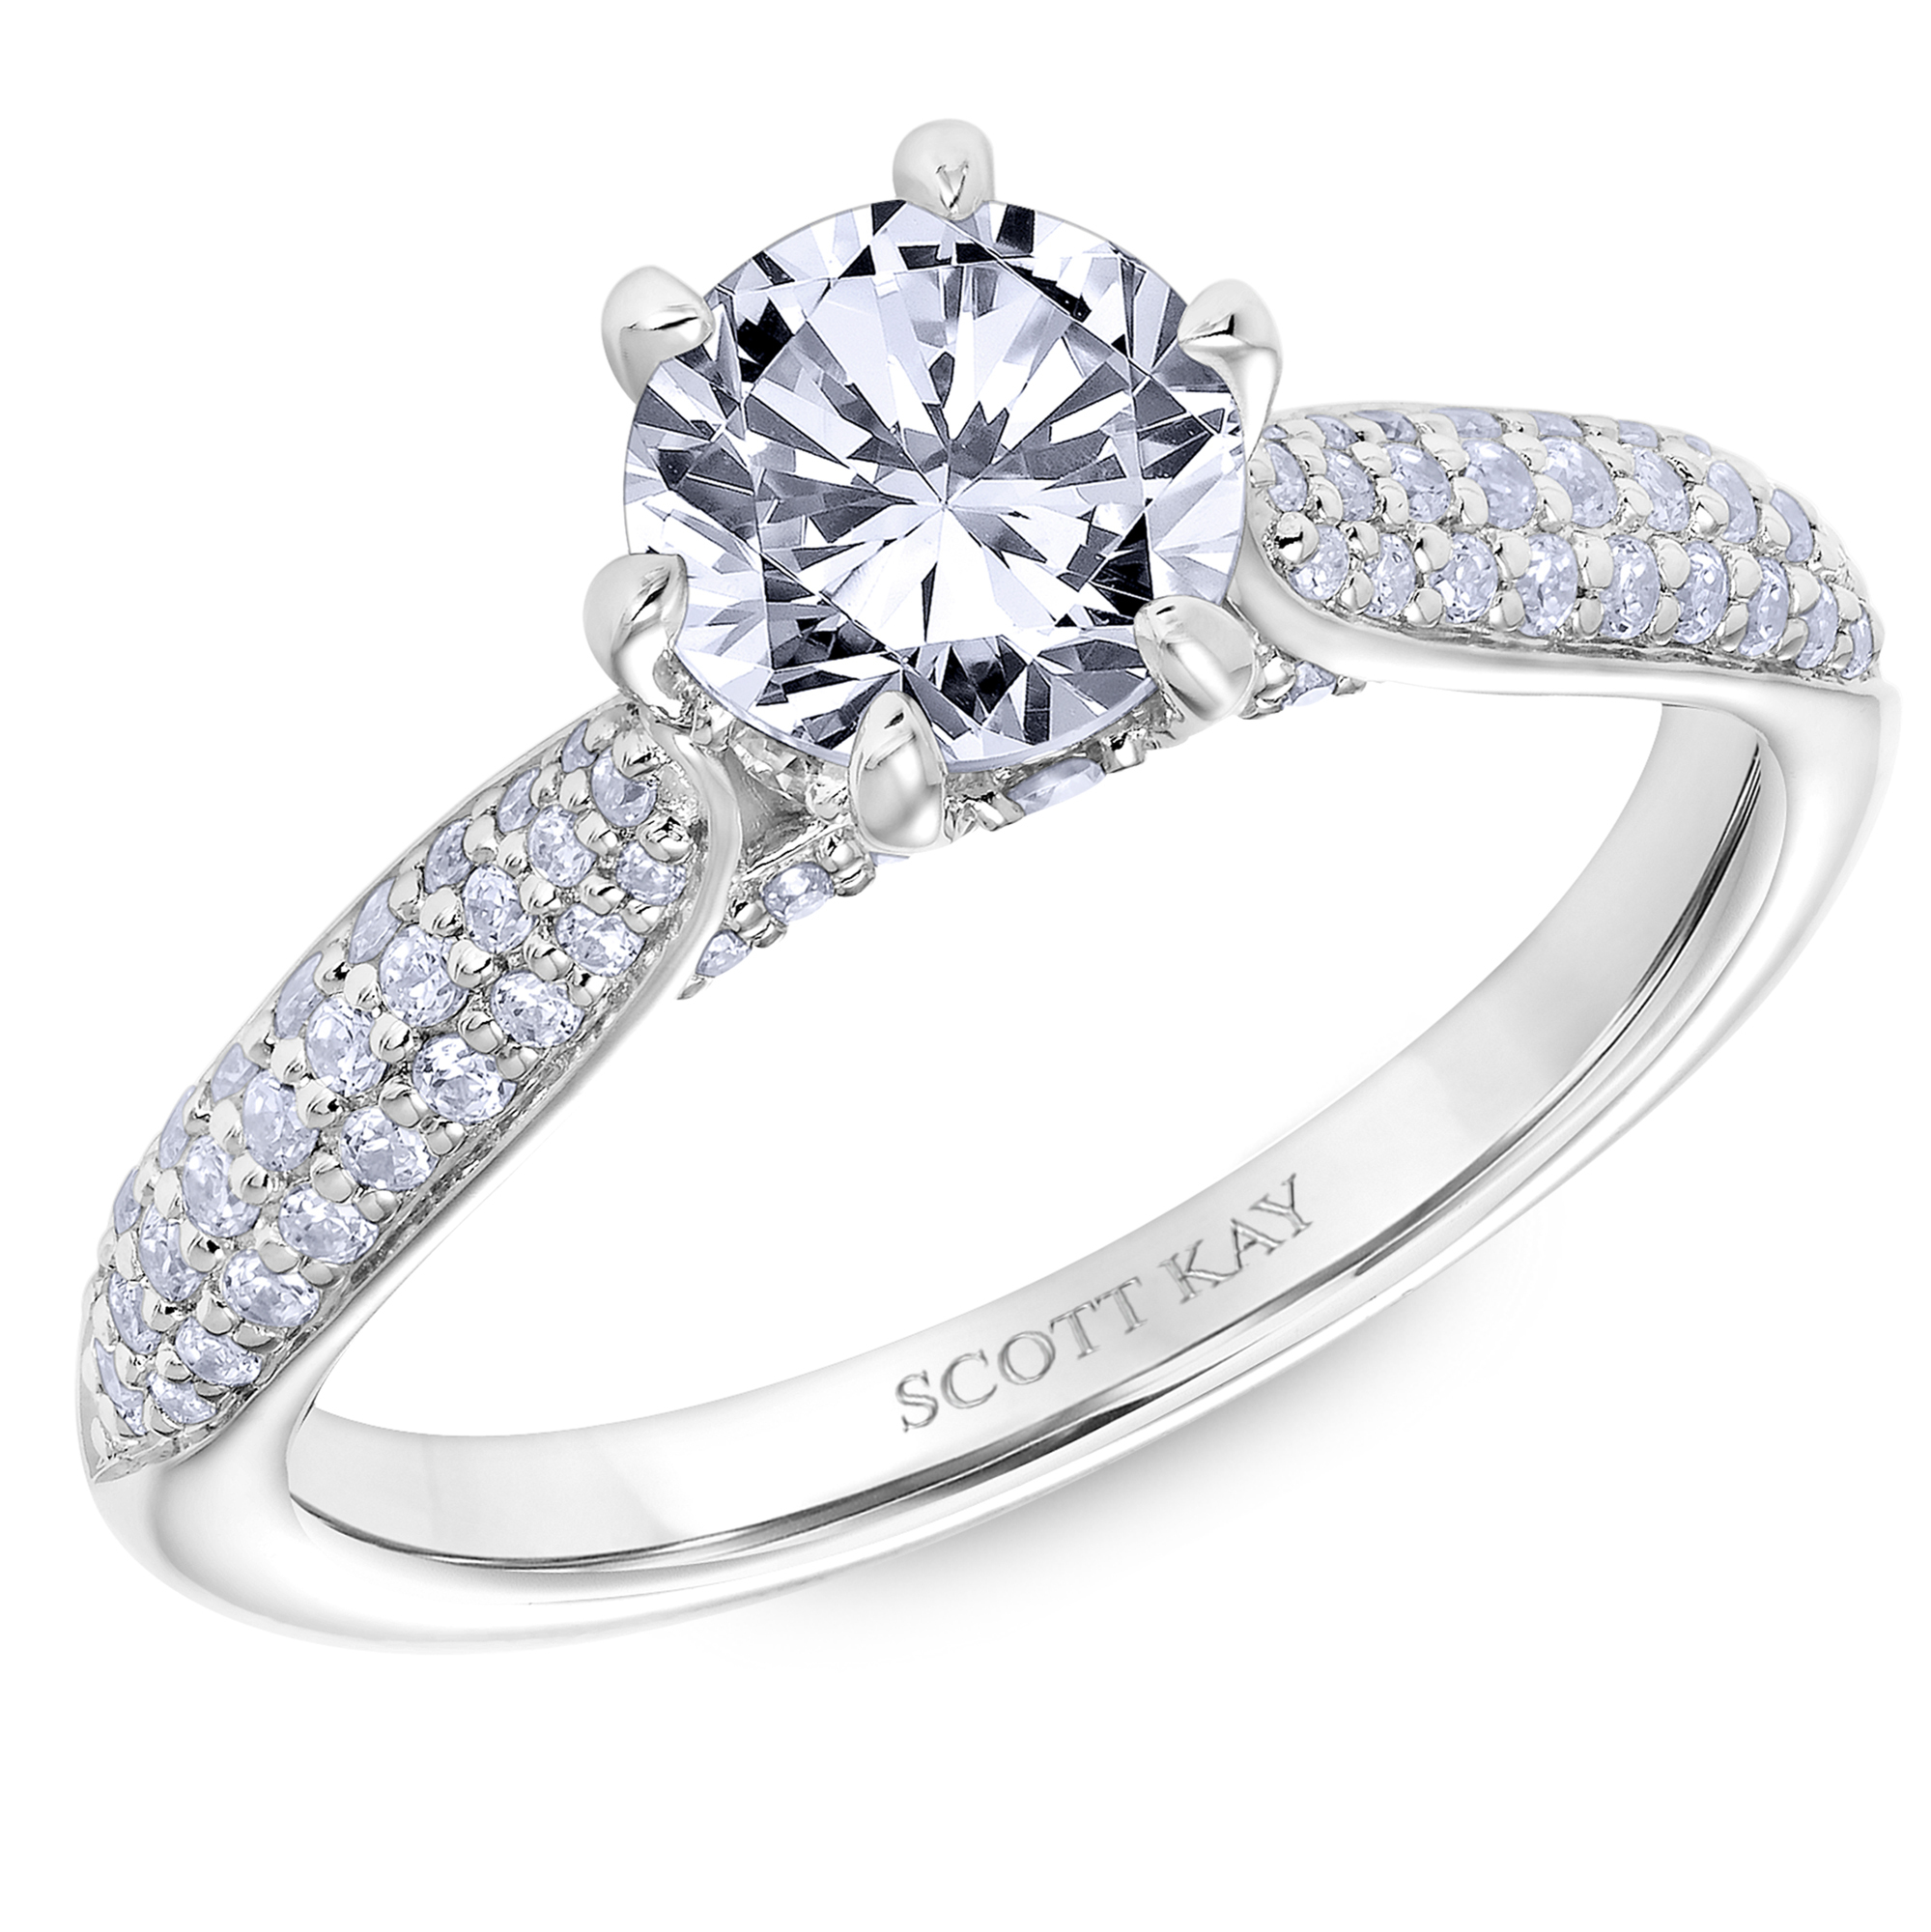 scott gia rings caymancode kay engagement diamond princess ring ct